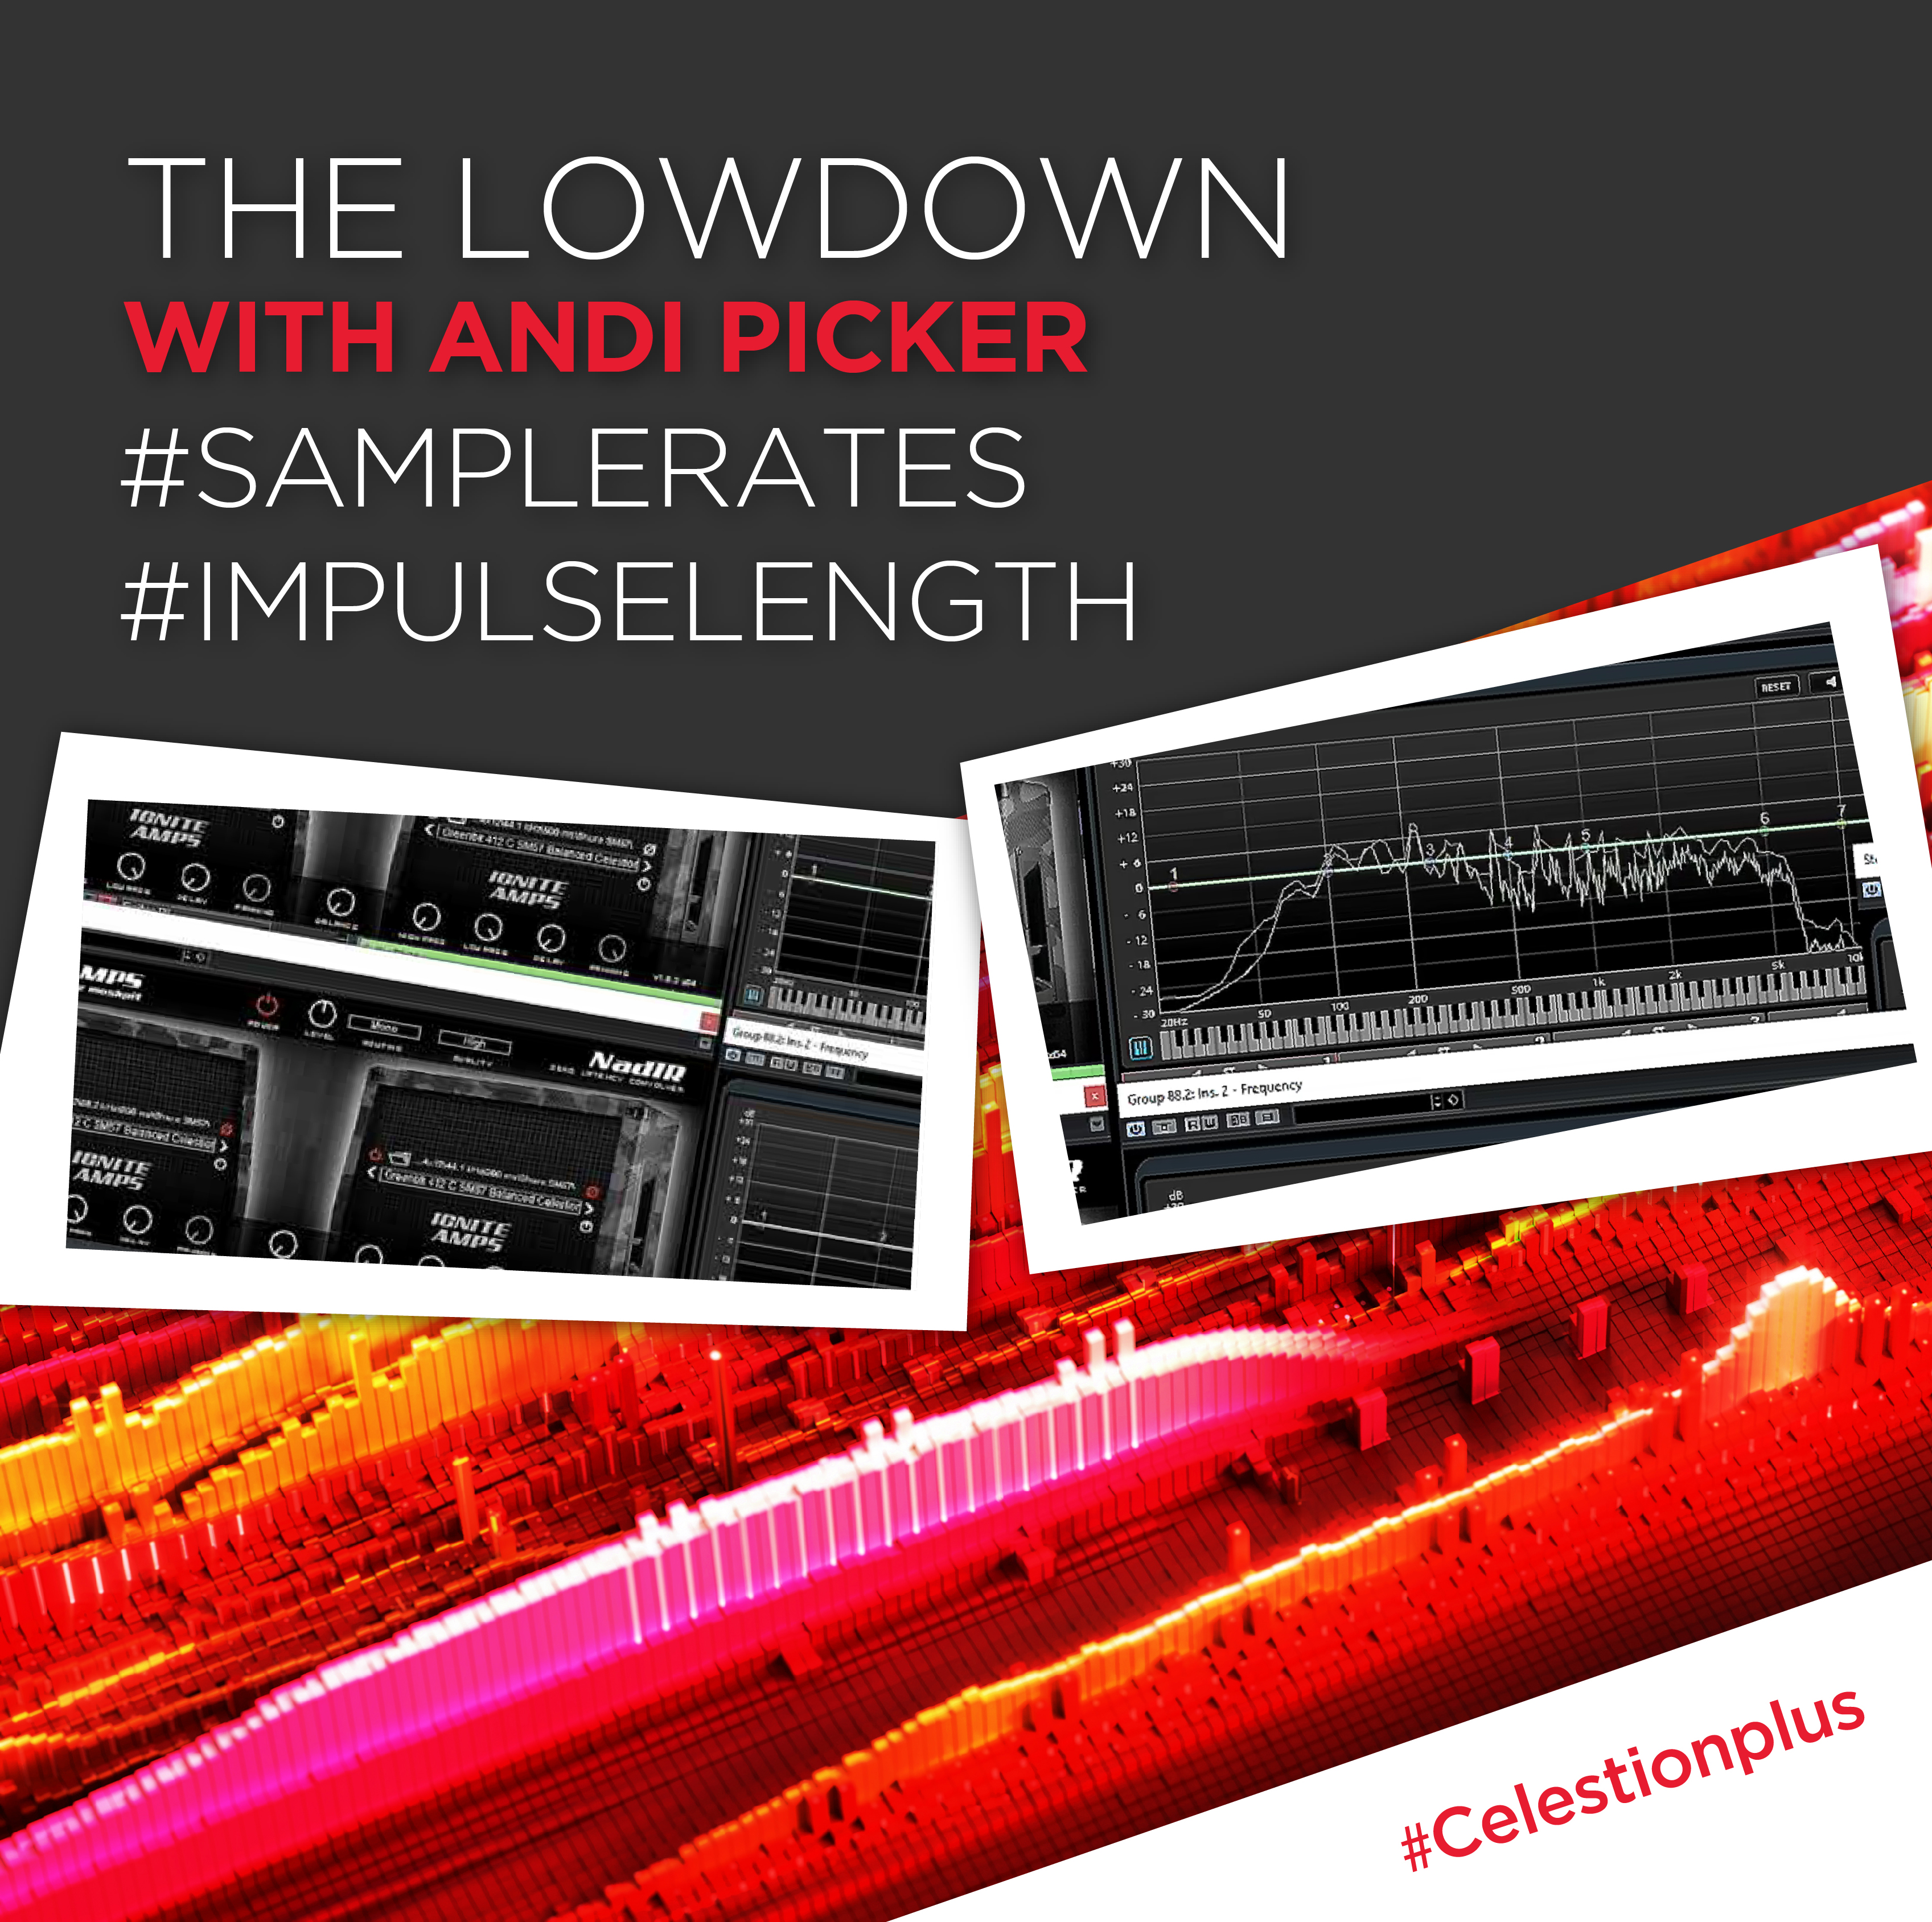 The Lowdown with Andi Picker: Sample Rates & Impulse Lengths